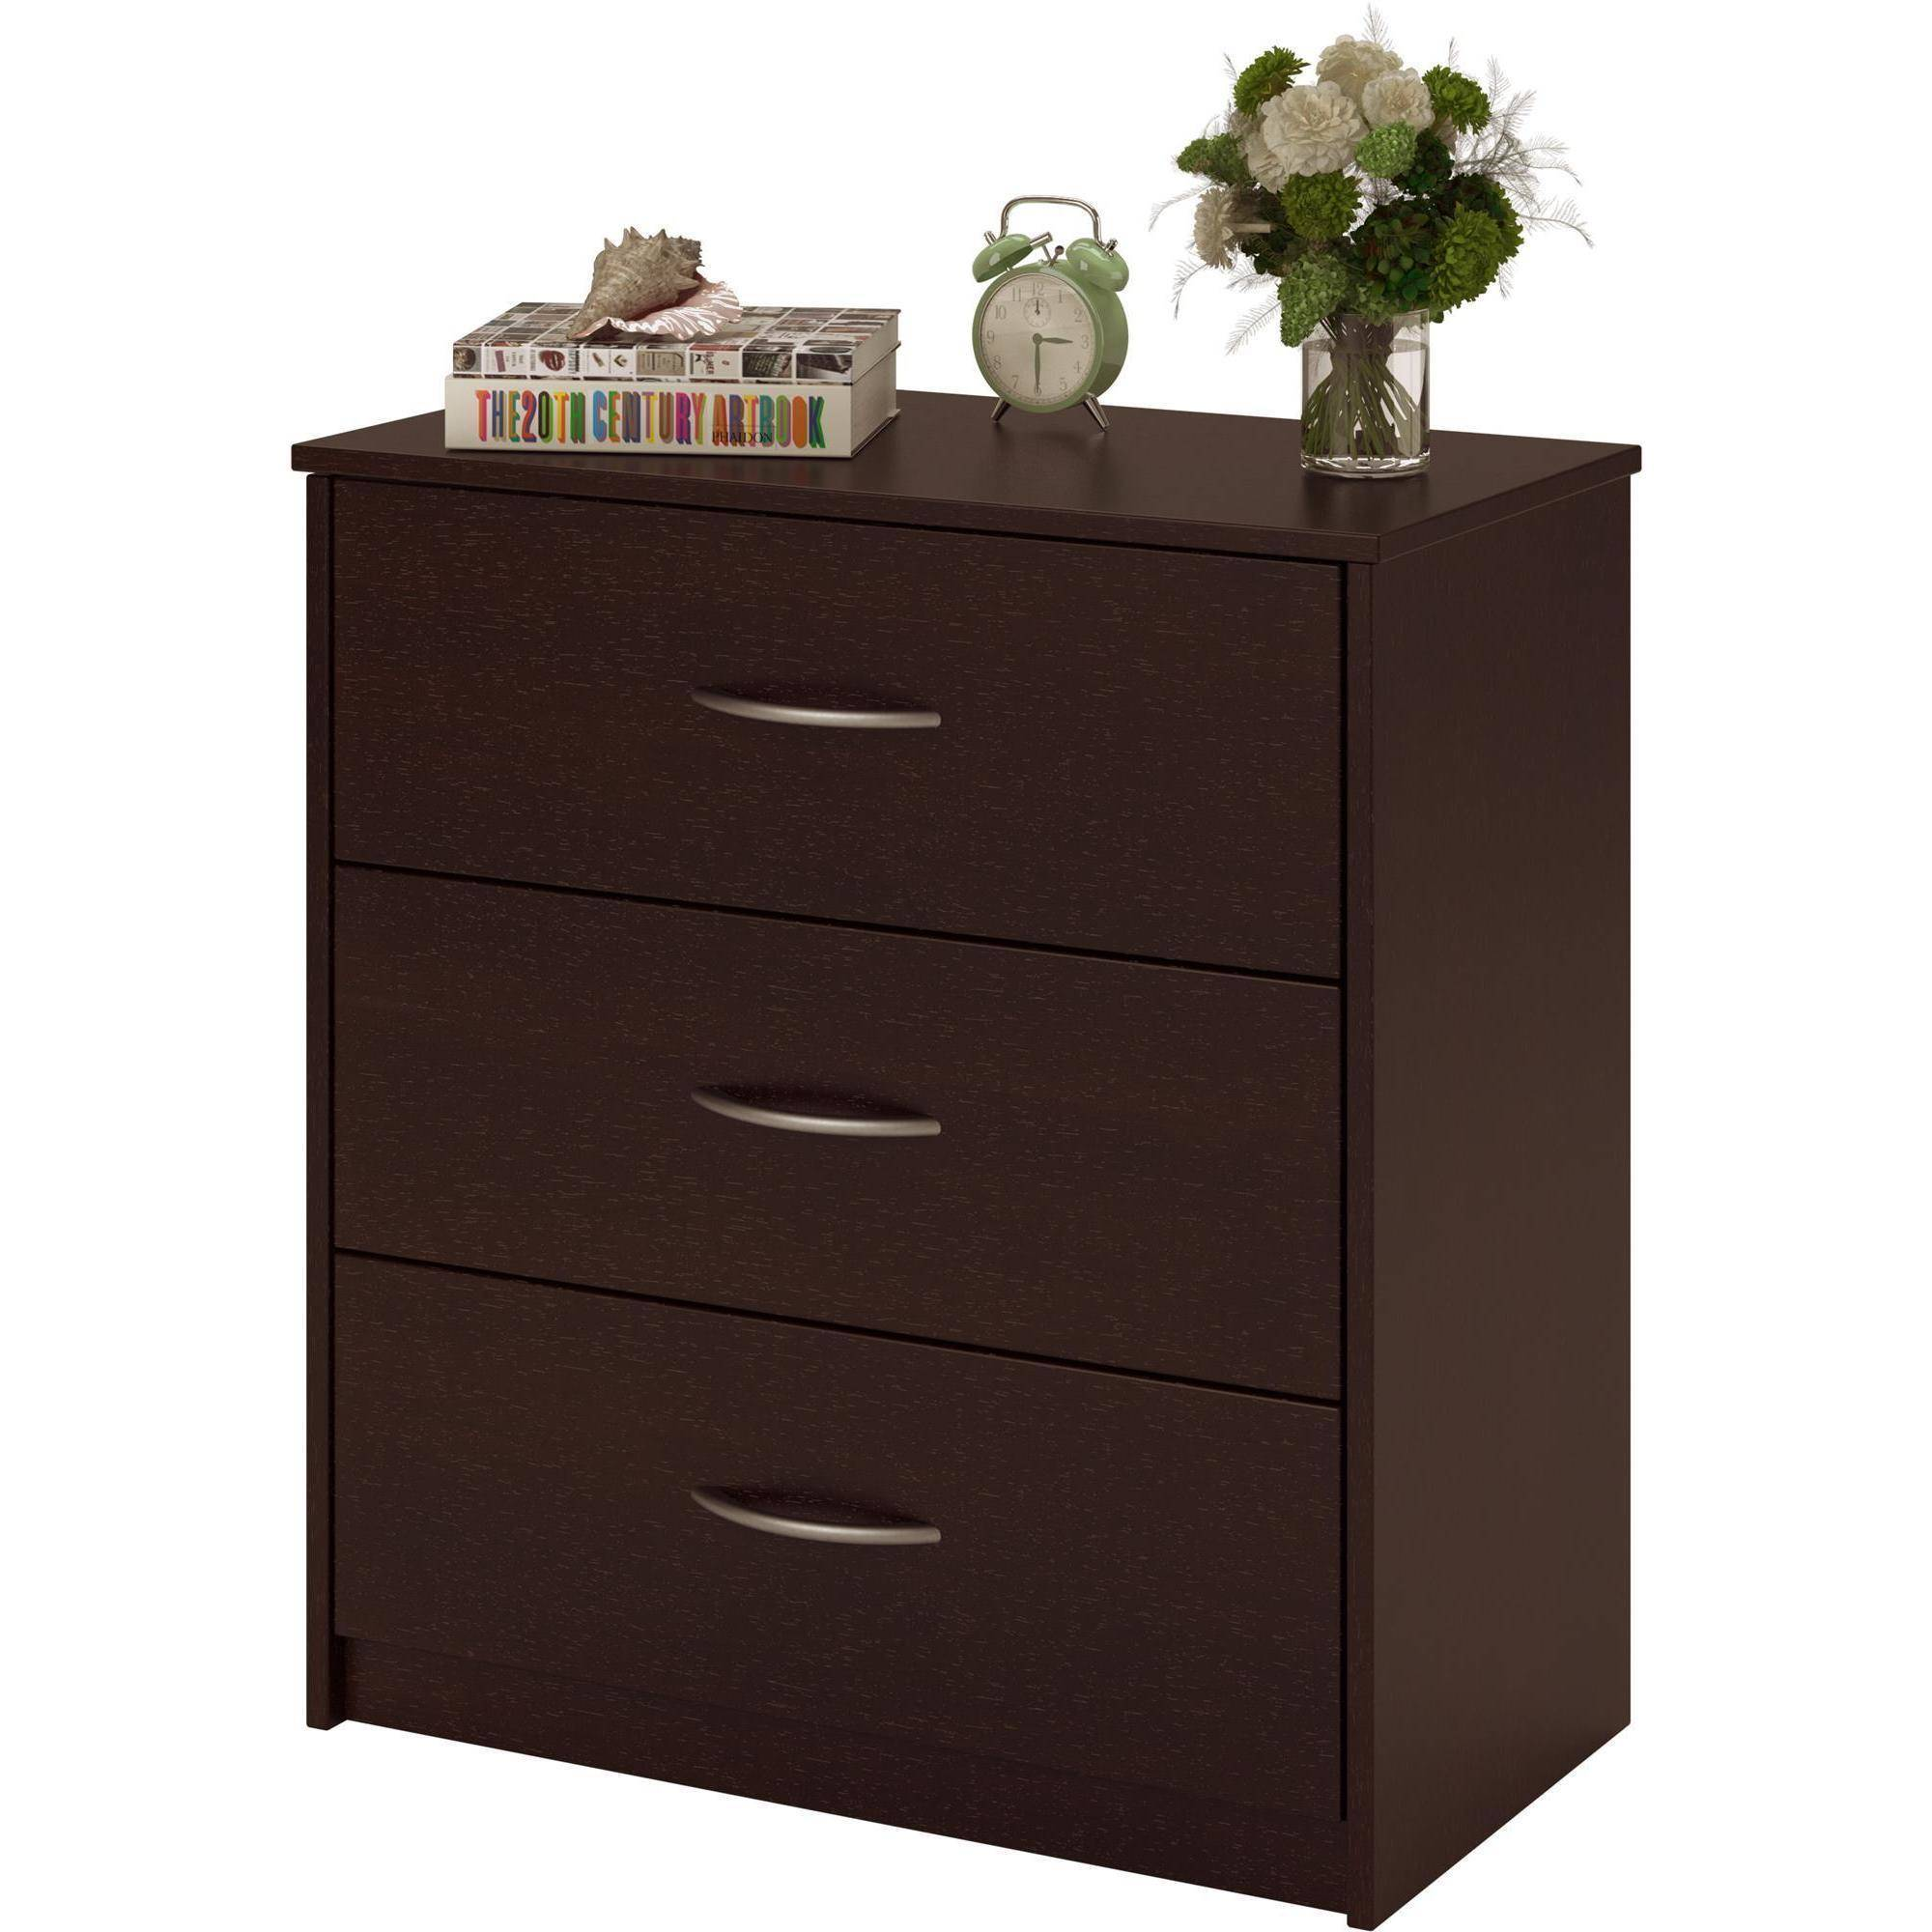 Mainstays 3 Drawer Chest Cinnamon Cherry Walmart